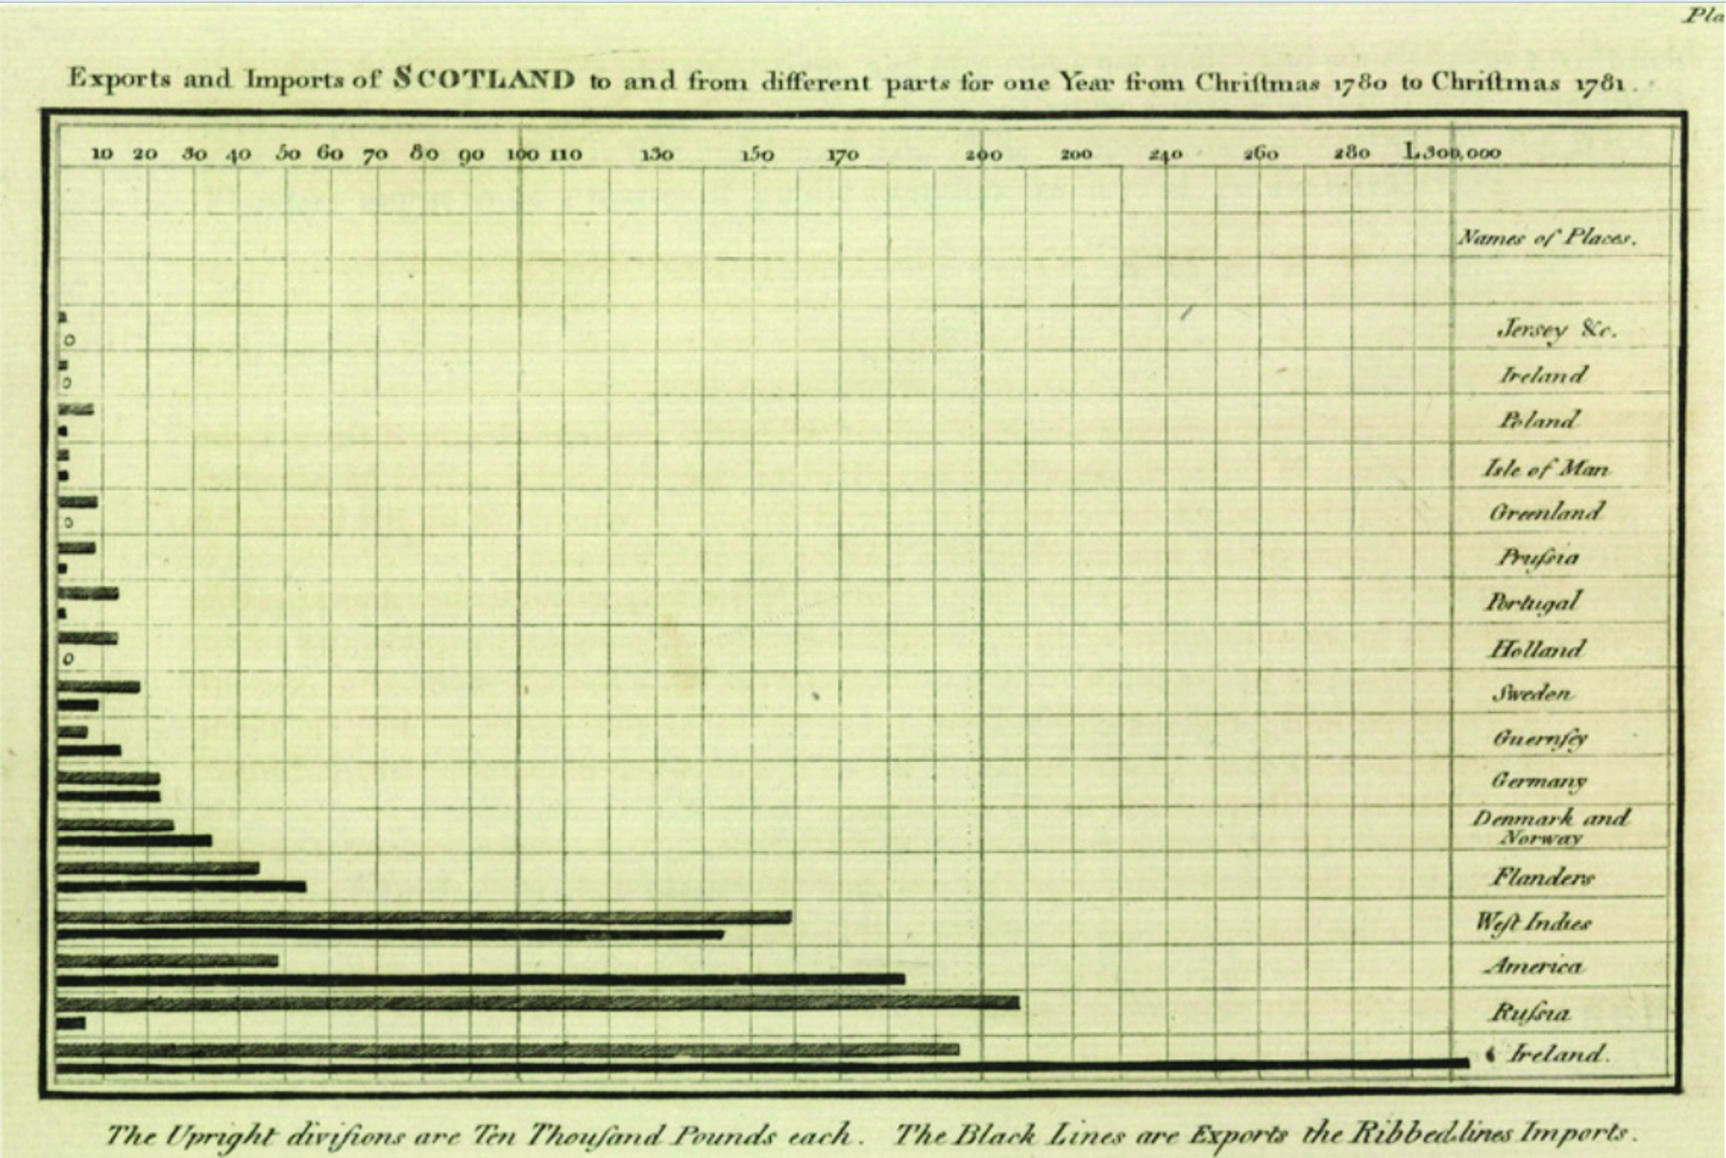 Older graph showing imports and exports of Scotland in the 1700s